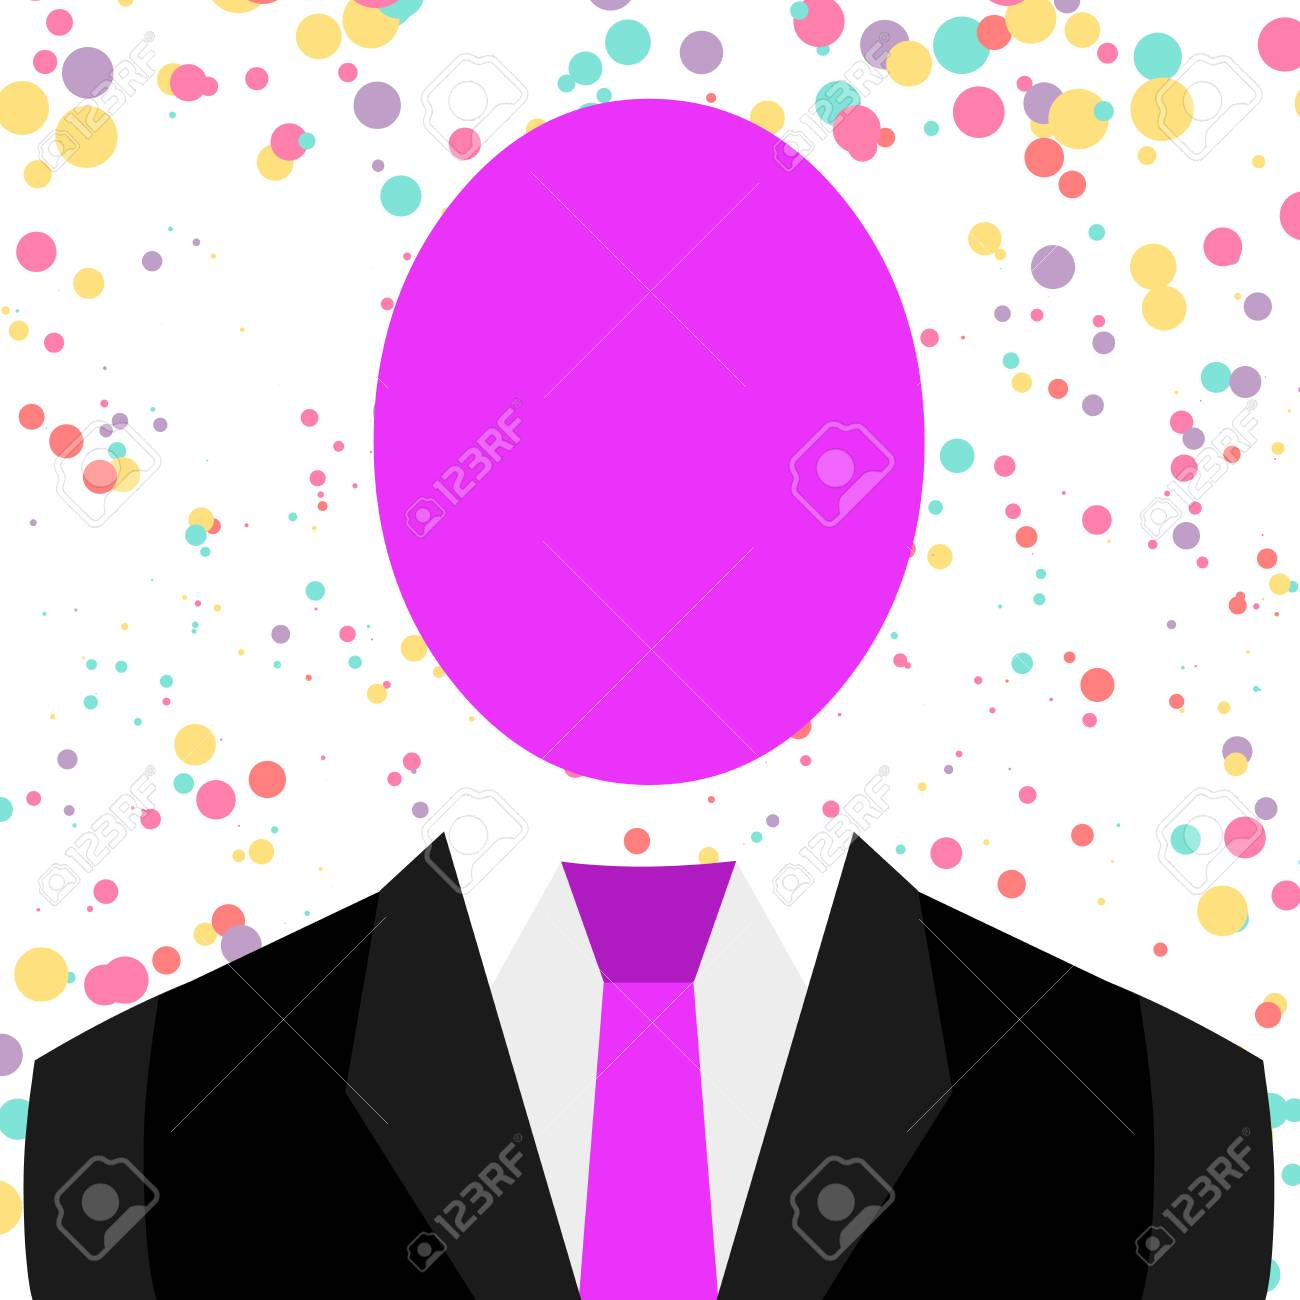 Symbolic Drawing Emblematic Figure of Man Formal Suit Oval Faceless